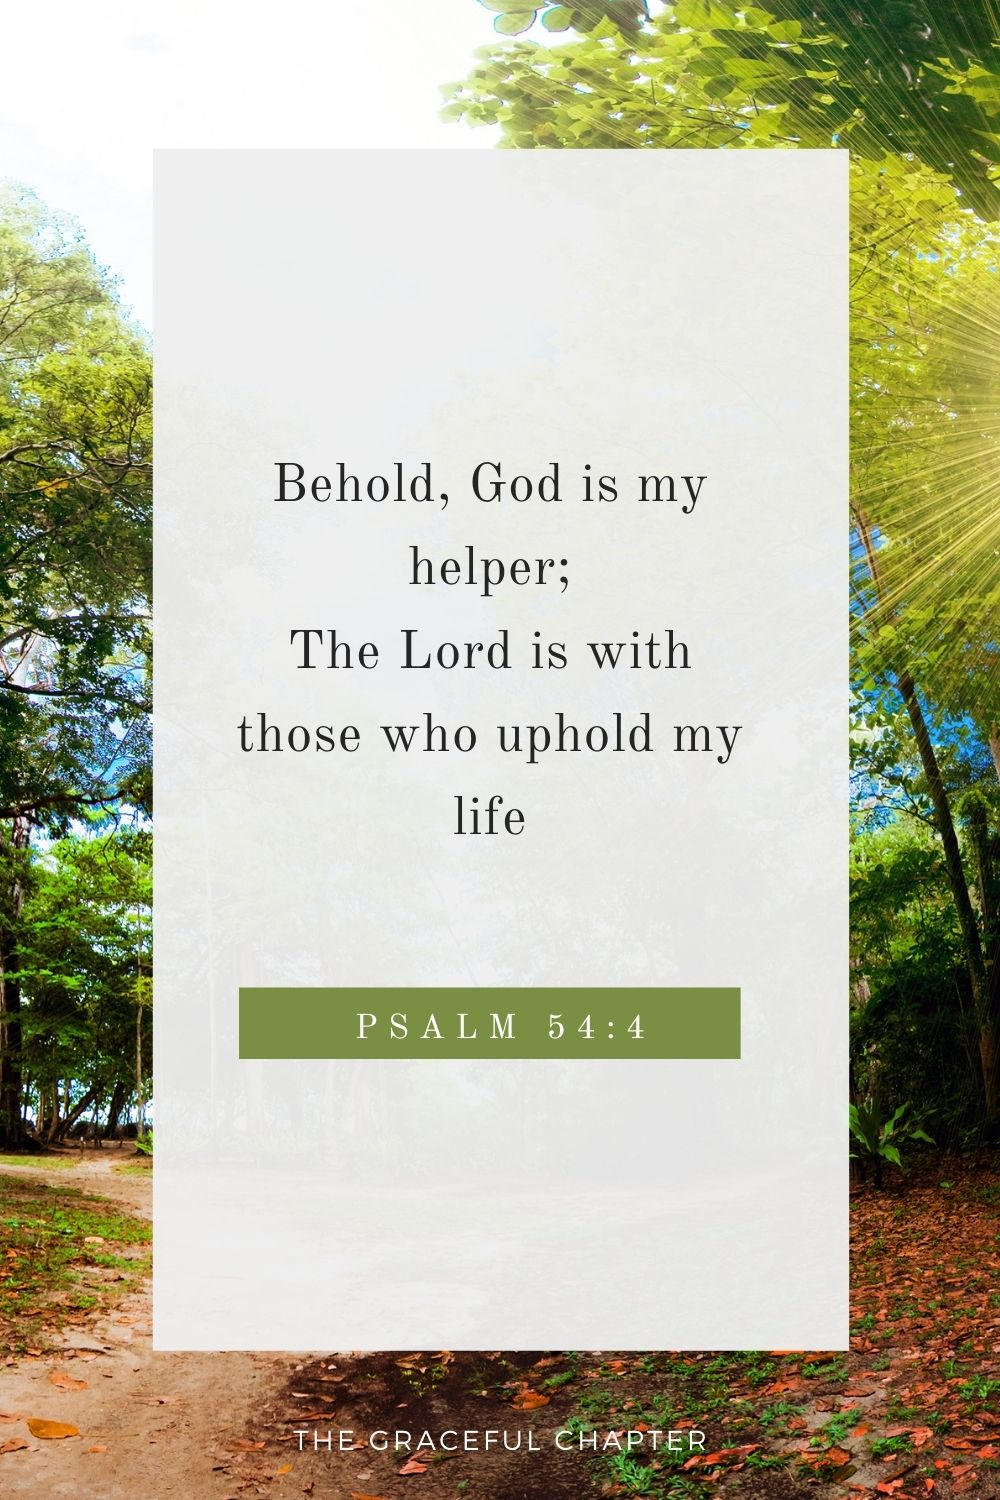 Behold, God is my helper; The Lord is with those who uphold my life.  Psalm 54:4